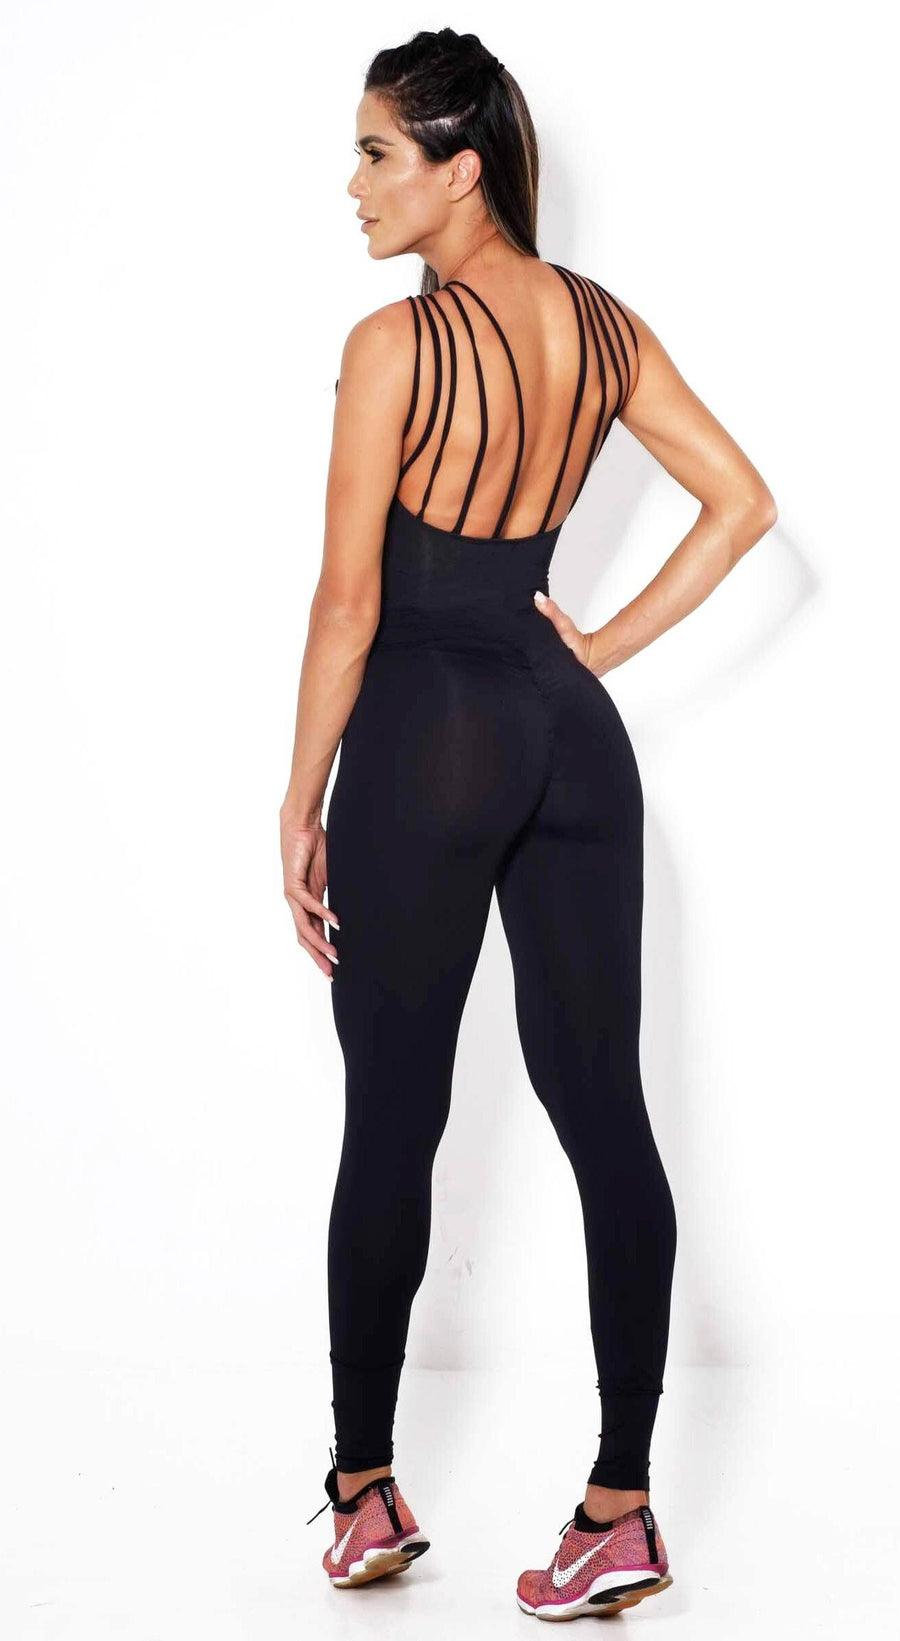 Brazilian Workout Jumpsuit  - Scrunch Booty Lux Catsuit Black